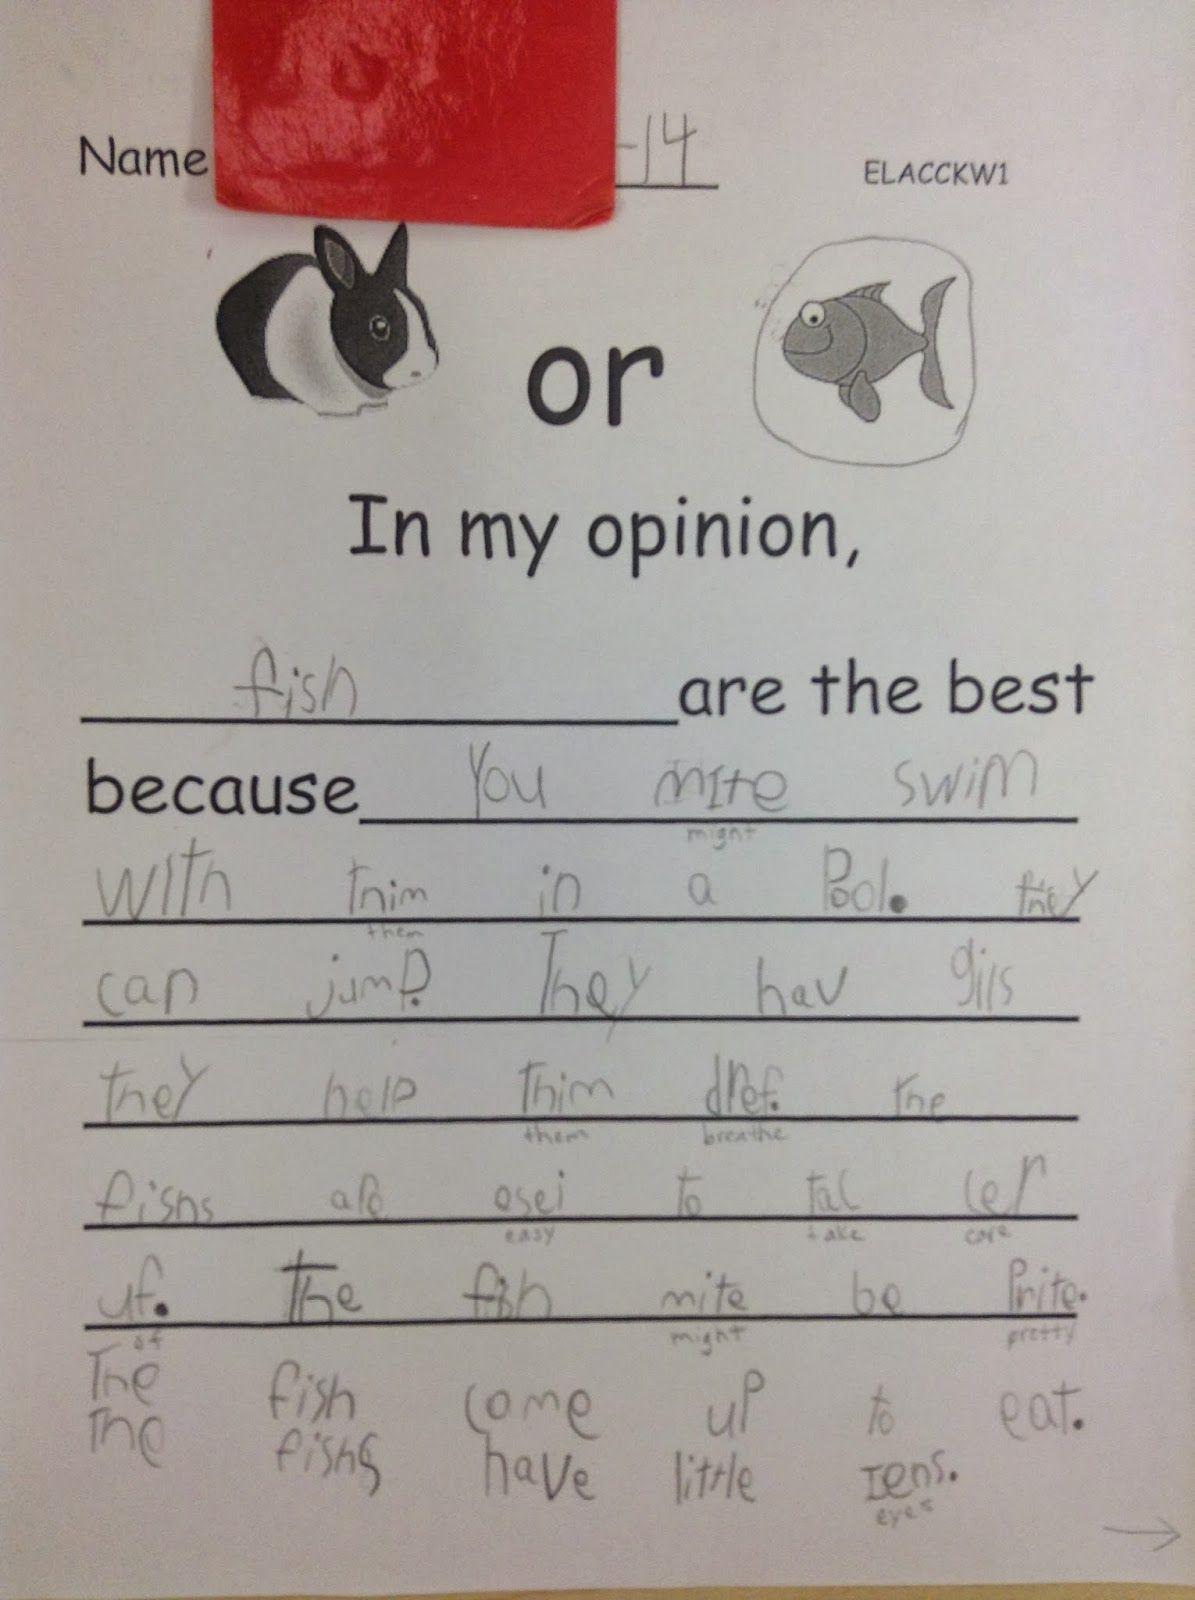 Dr Clements' Kindergarten : More Opinion Writing For